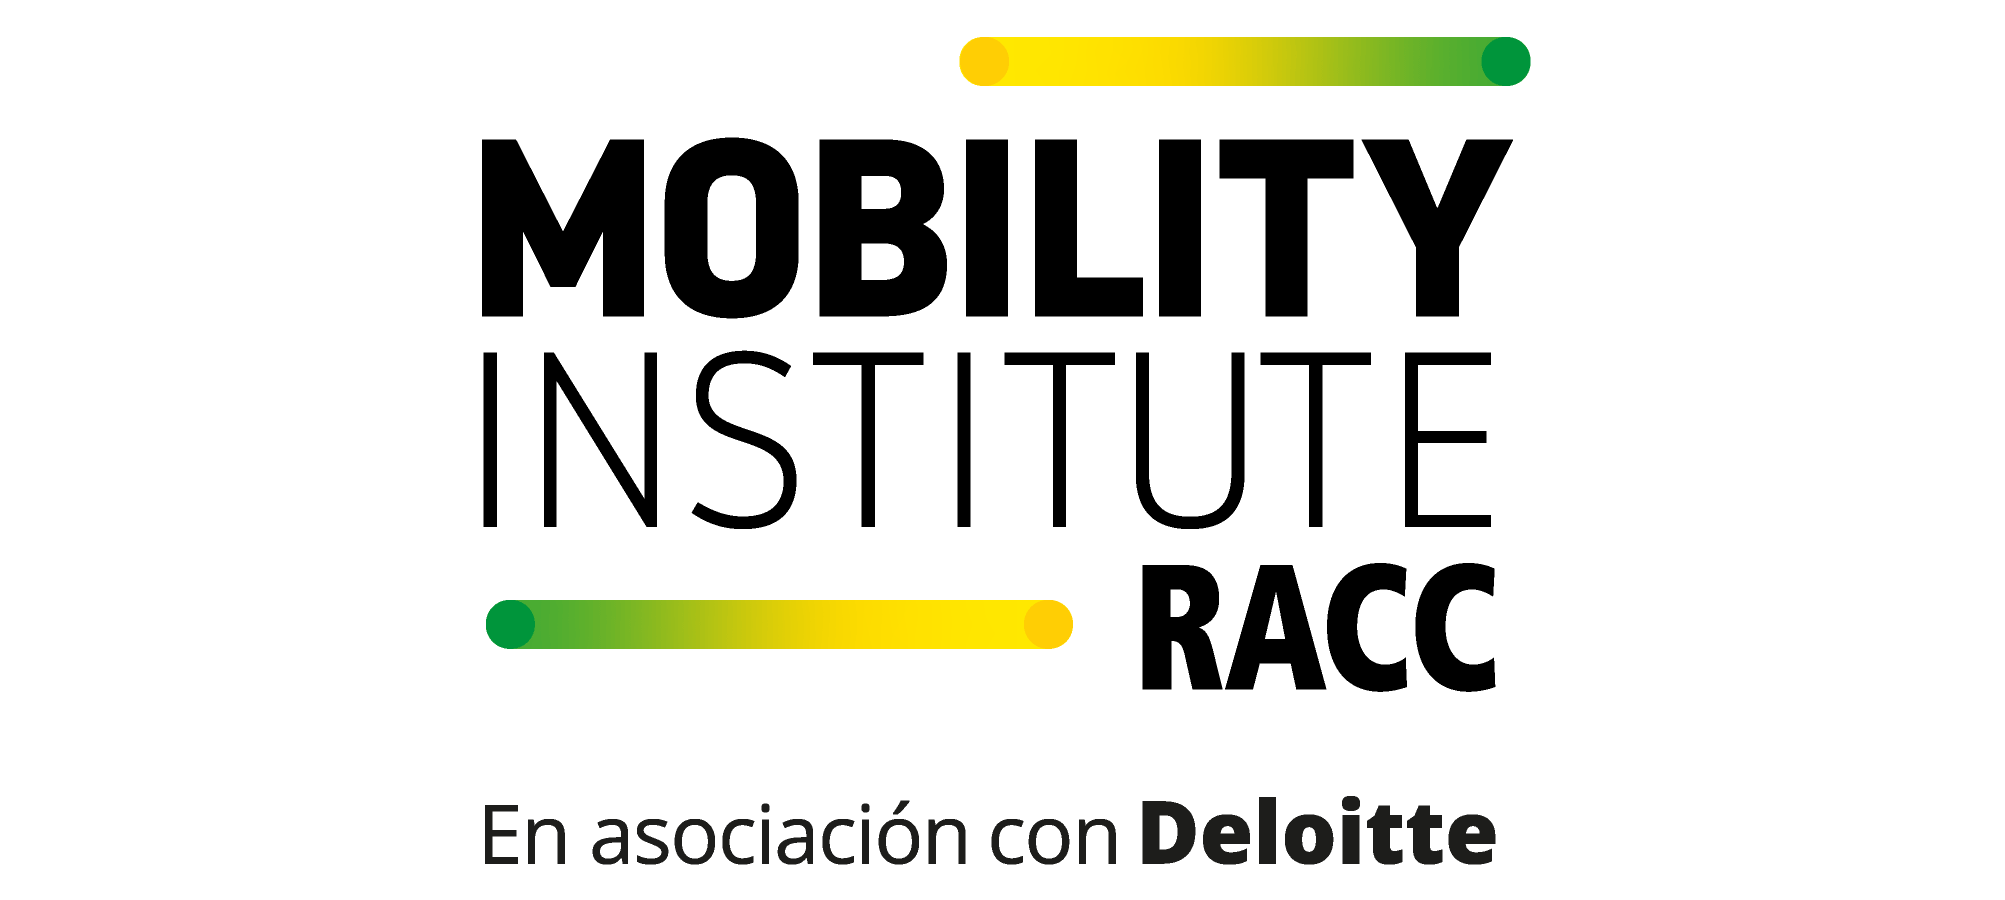 MOBILITY INSTITUTE